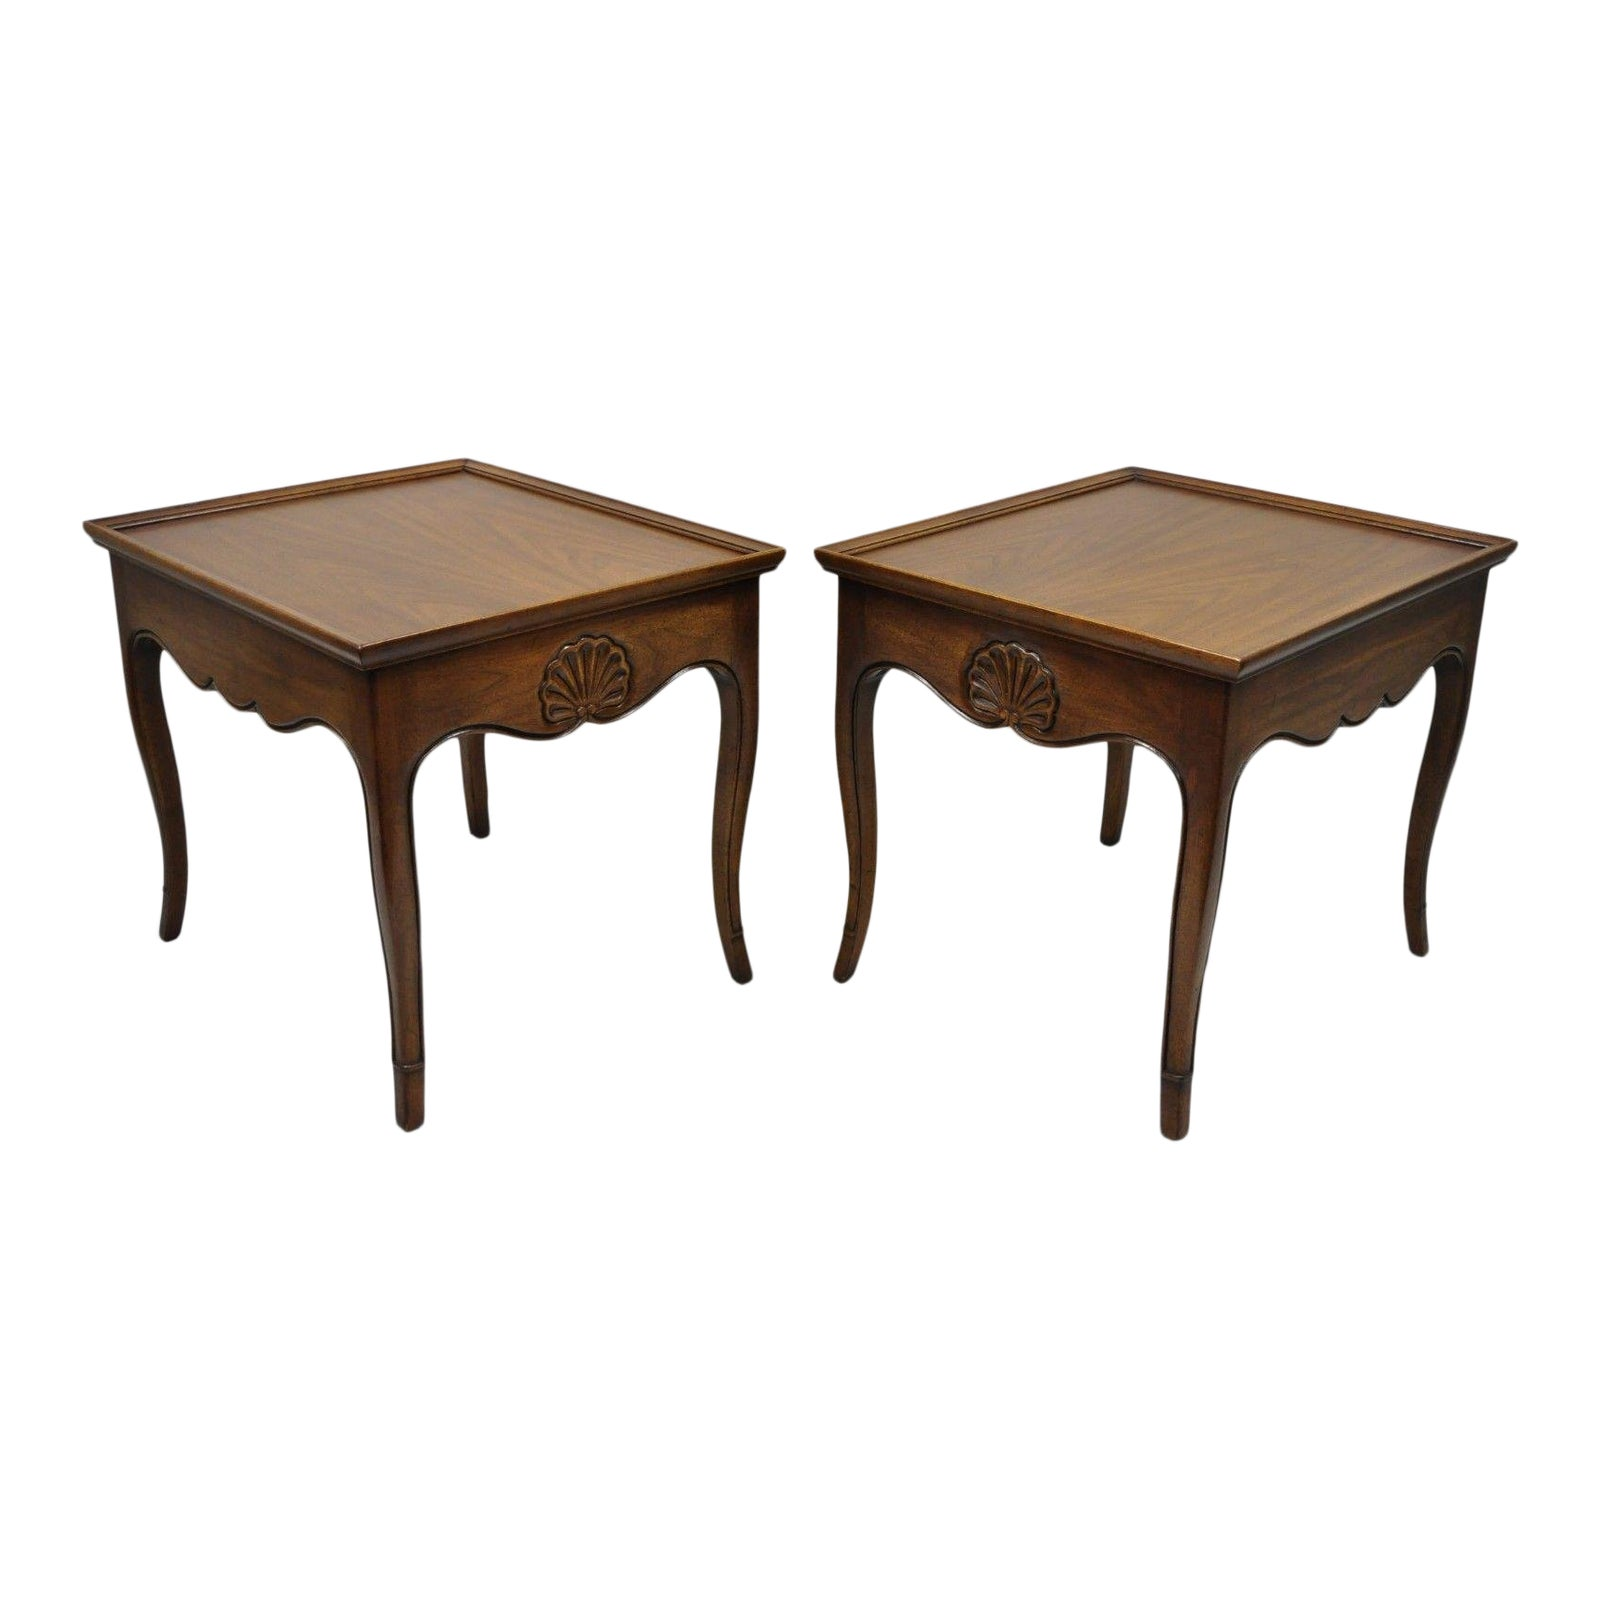 henredon french country shell carved scalloped edge walnut end tables pair style chairish ashley furniture manhattan hall table inches deep glass dining bench orange patio side